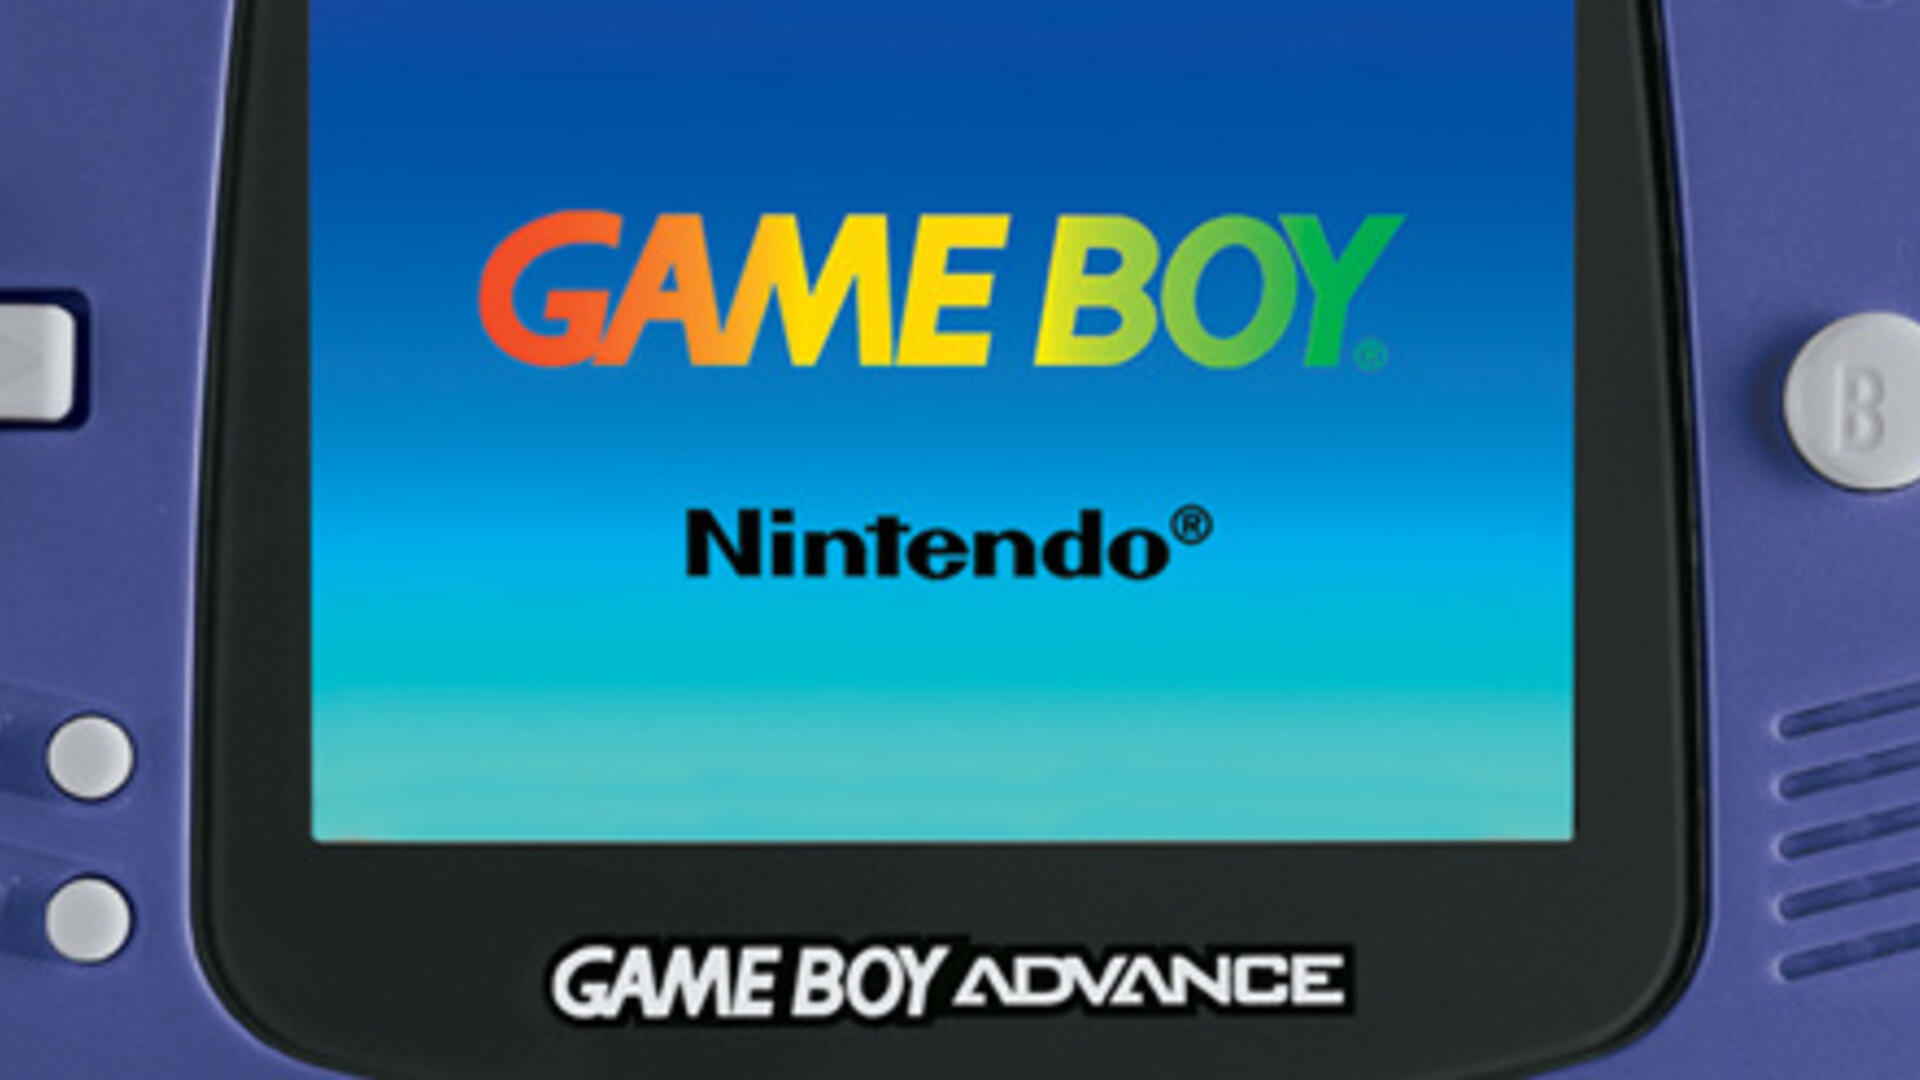 Collecting the Best Game Boy Advance Games